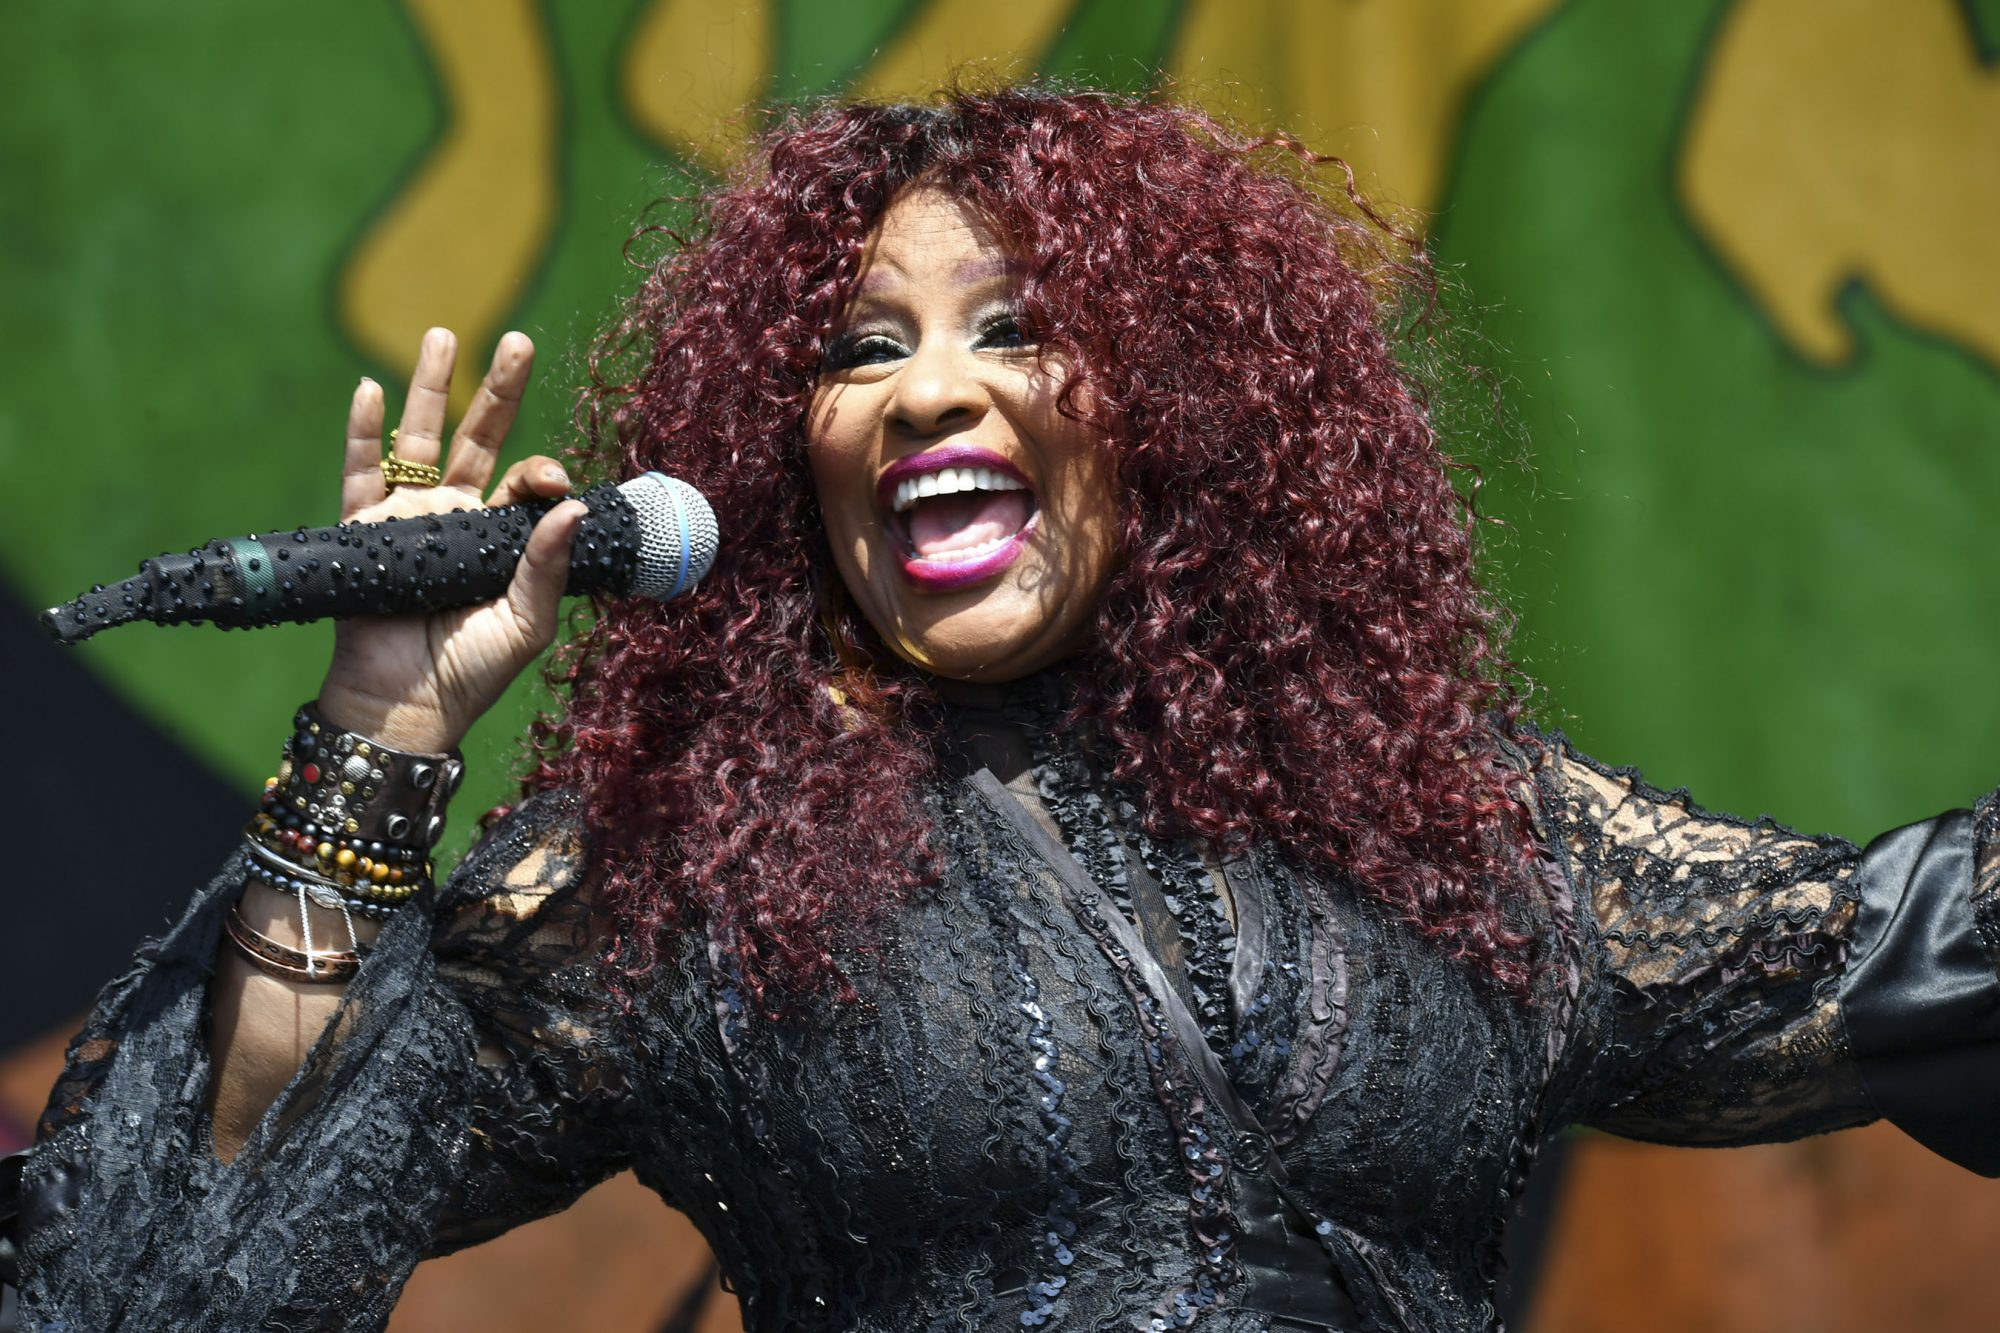 NEW ORLEANS, LOUISIANA - MAY 05: Chaka Khan performs onstage at the 2019 New Orleans Jazz & Heritage Festival at Fair Grounds Race Course on May 05, 2019 in New Orleans, Louisiana. (Photo by Jeff Kravitz/FilmMagic)